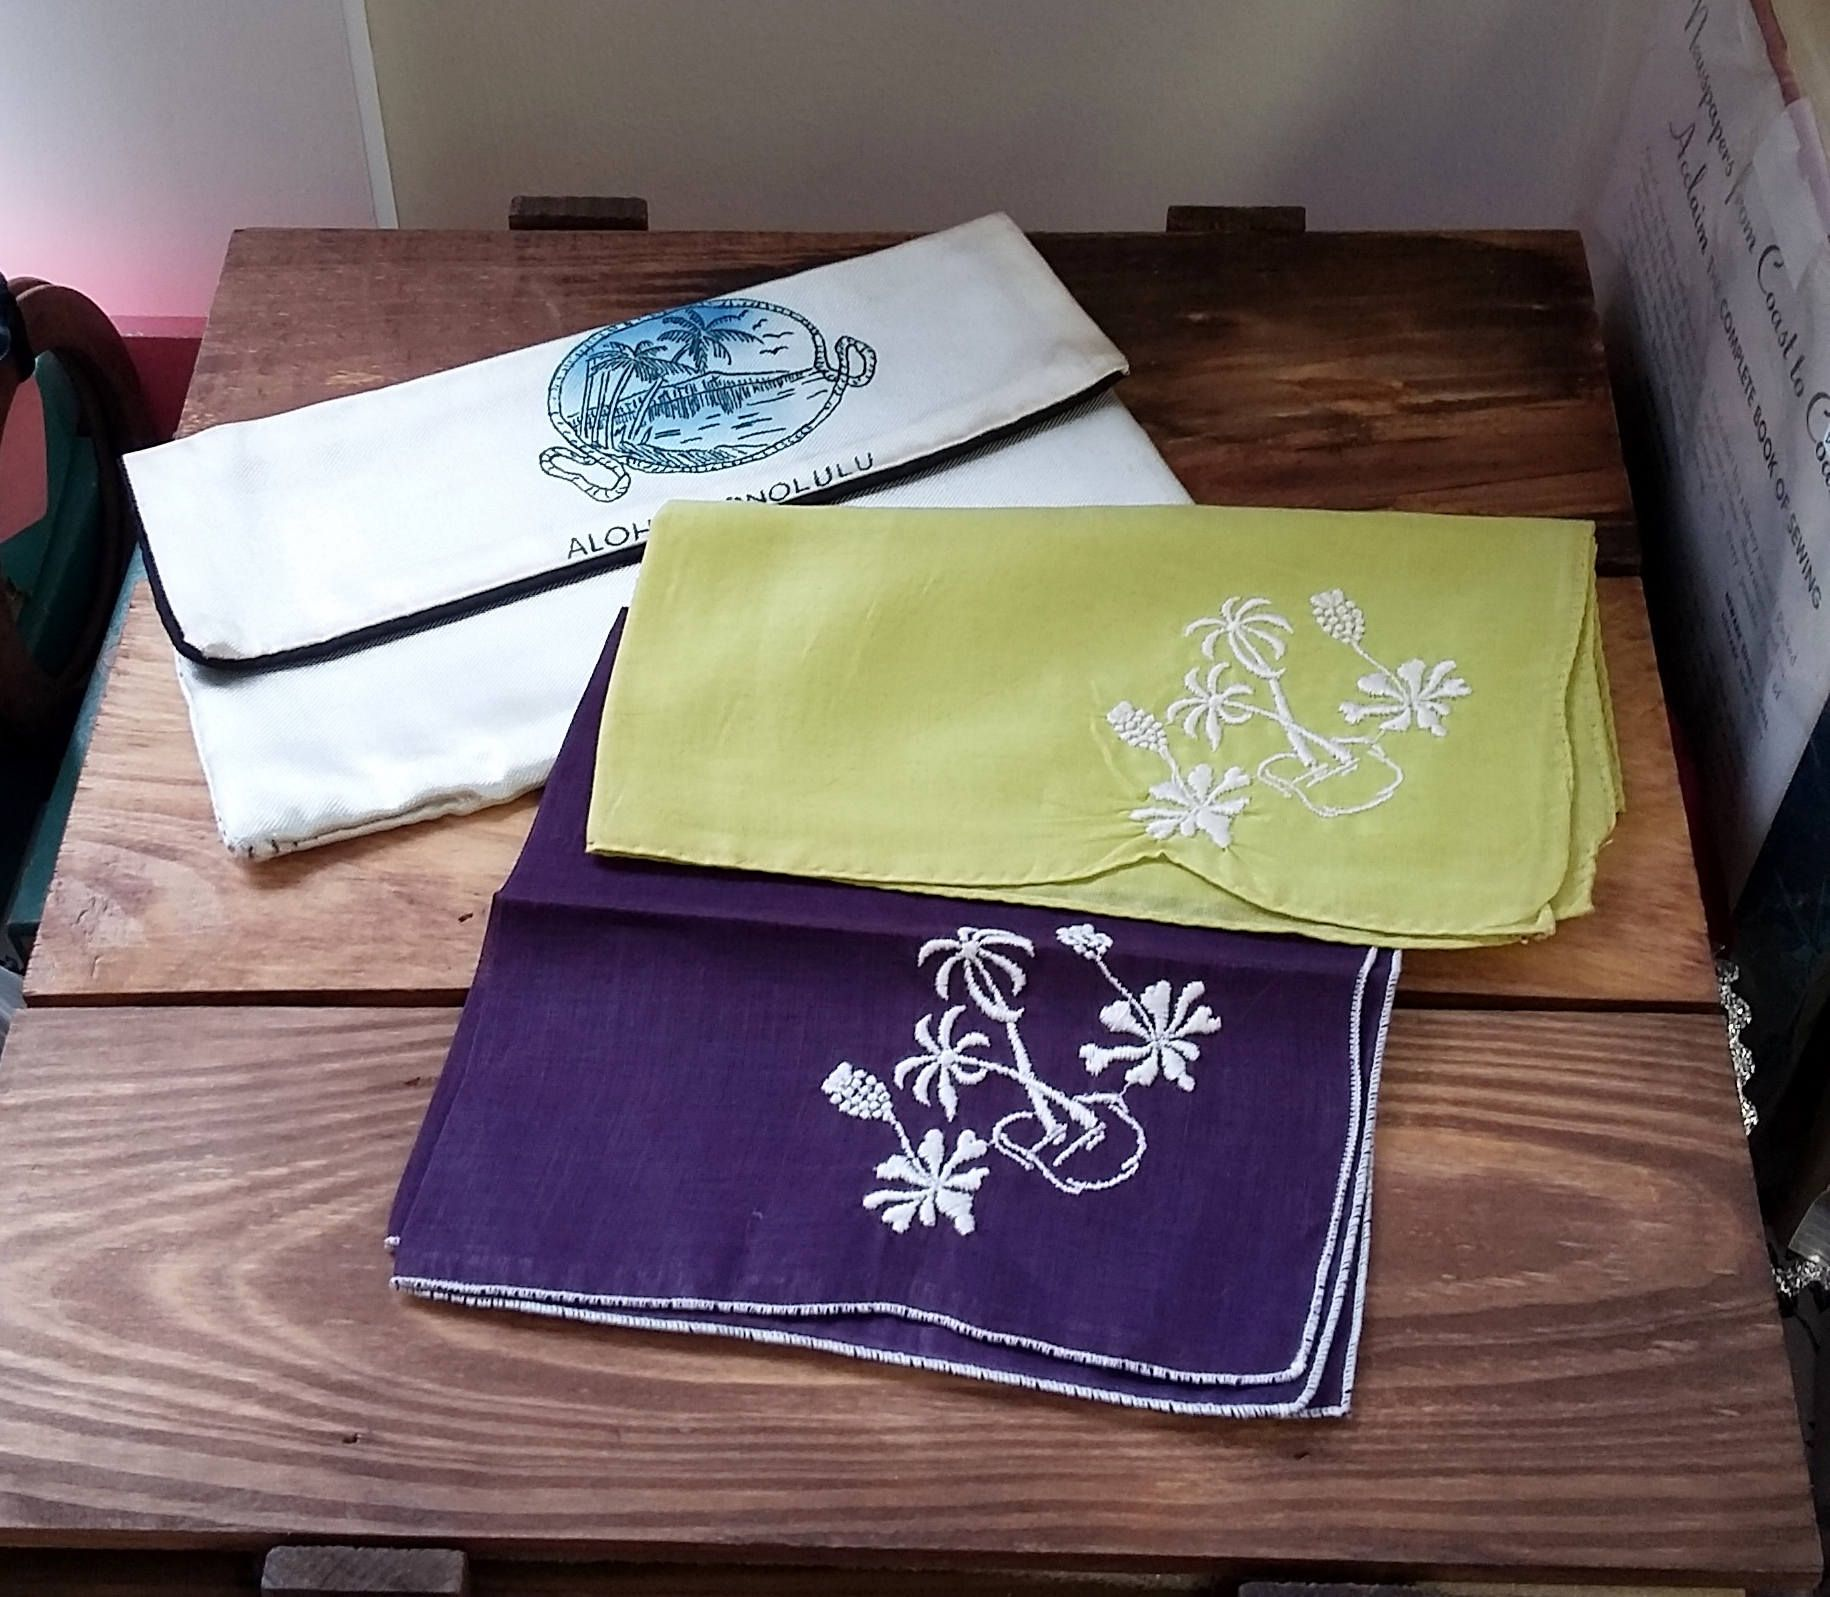 Vintage Hankerchief Set Aloha Honolulu Hawaii Hankies & Satin Enveope Pouch 40's 50's Mid Century Fashion Travel Souvenir Purple, Lime by OffbeatAvenue on Etsy